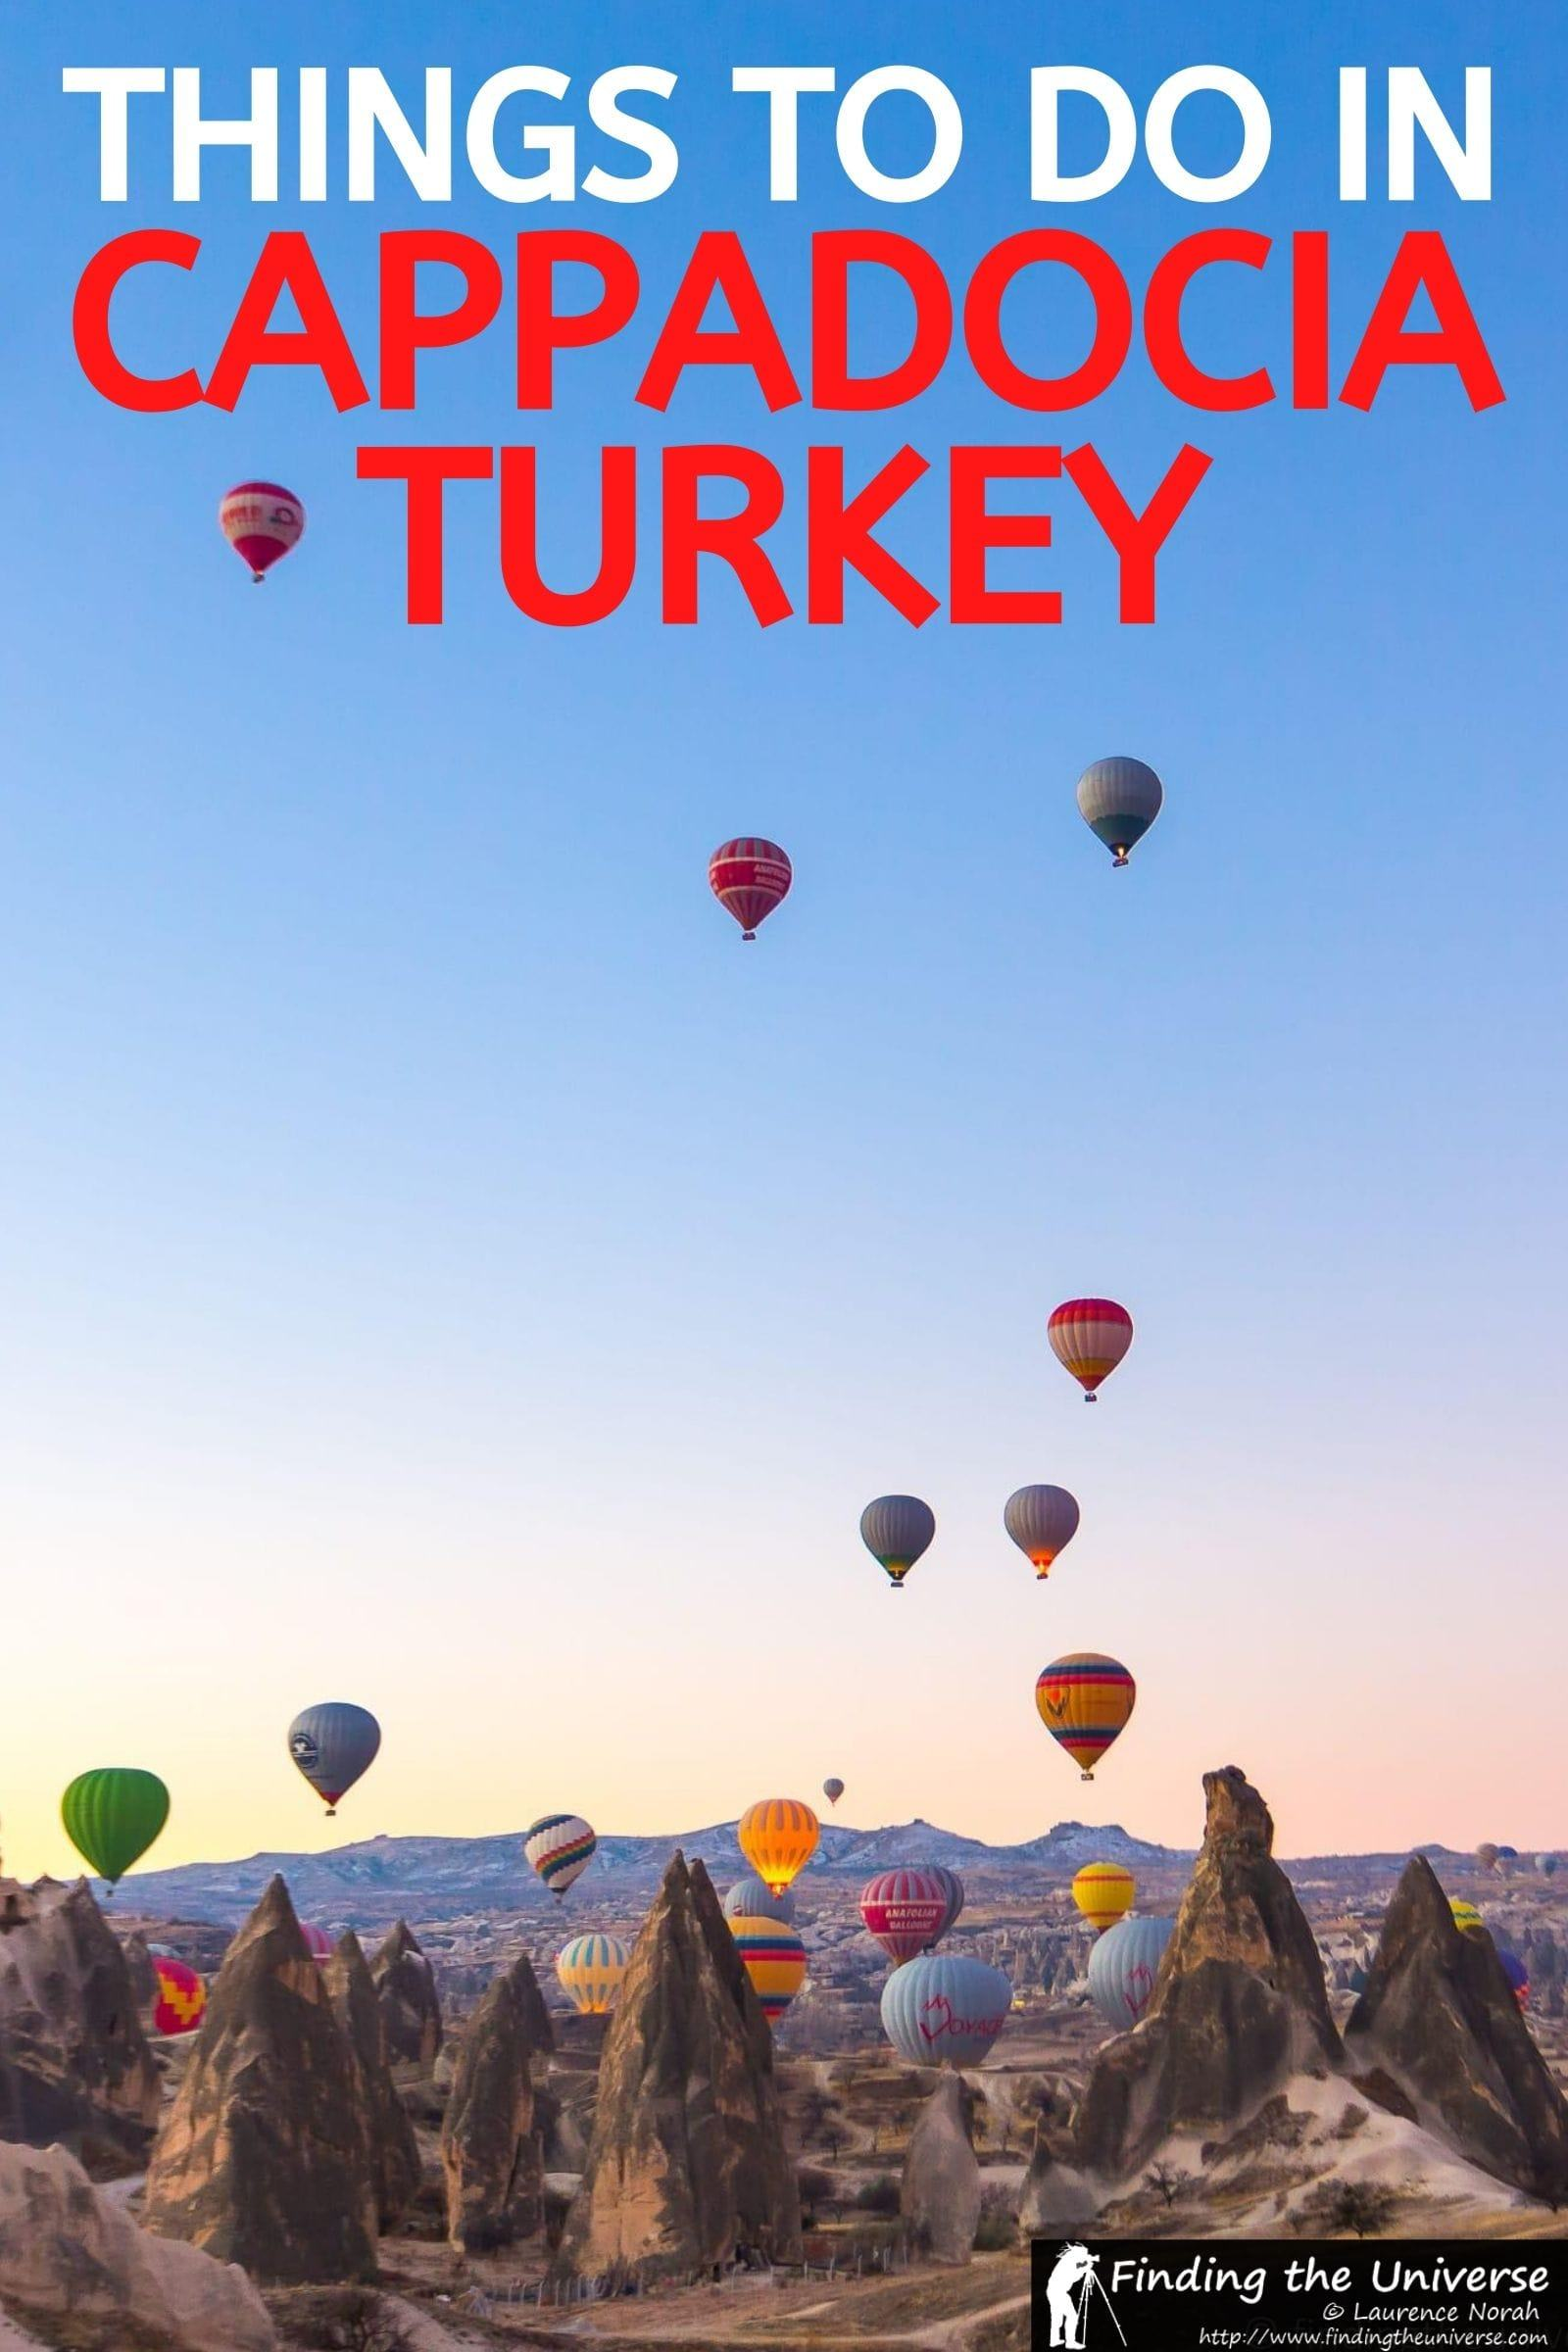 A detailed guide to things to do in Cappadocia Turkey. Everything from underground cities to hot air ballooning, plus tips for your visit!